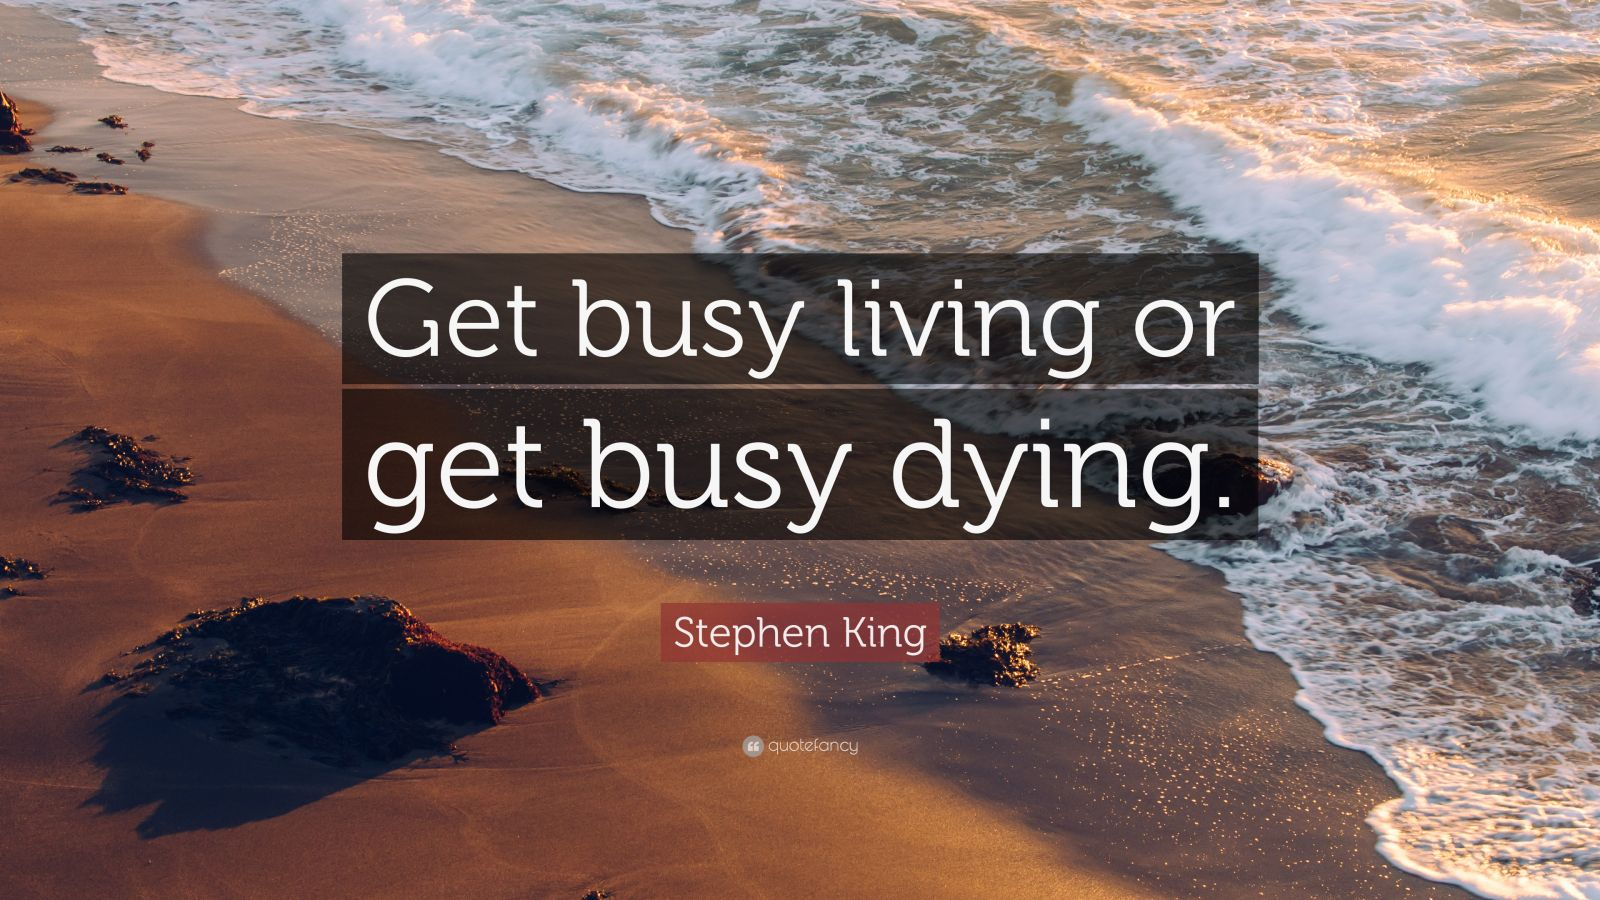 Mother Teresa Quotes Wallpapers Stephen King Quote Get Busy Living Or Get Busy Dying